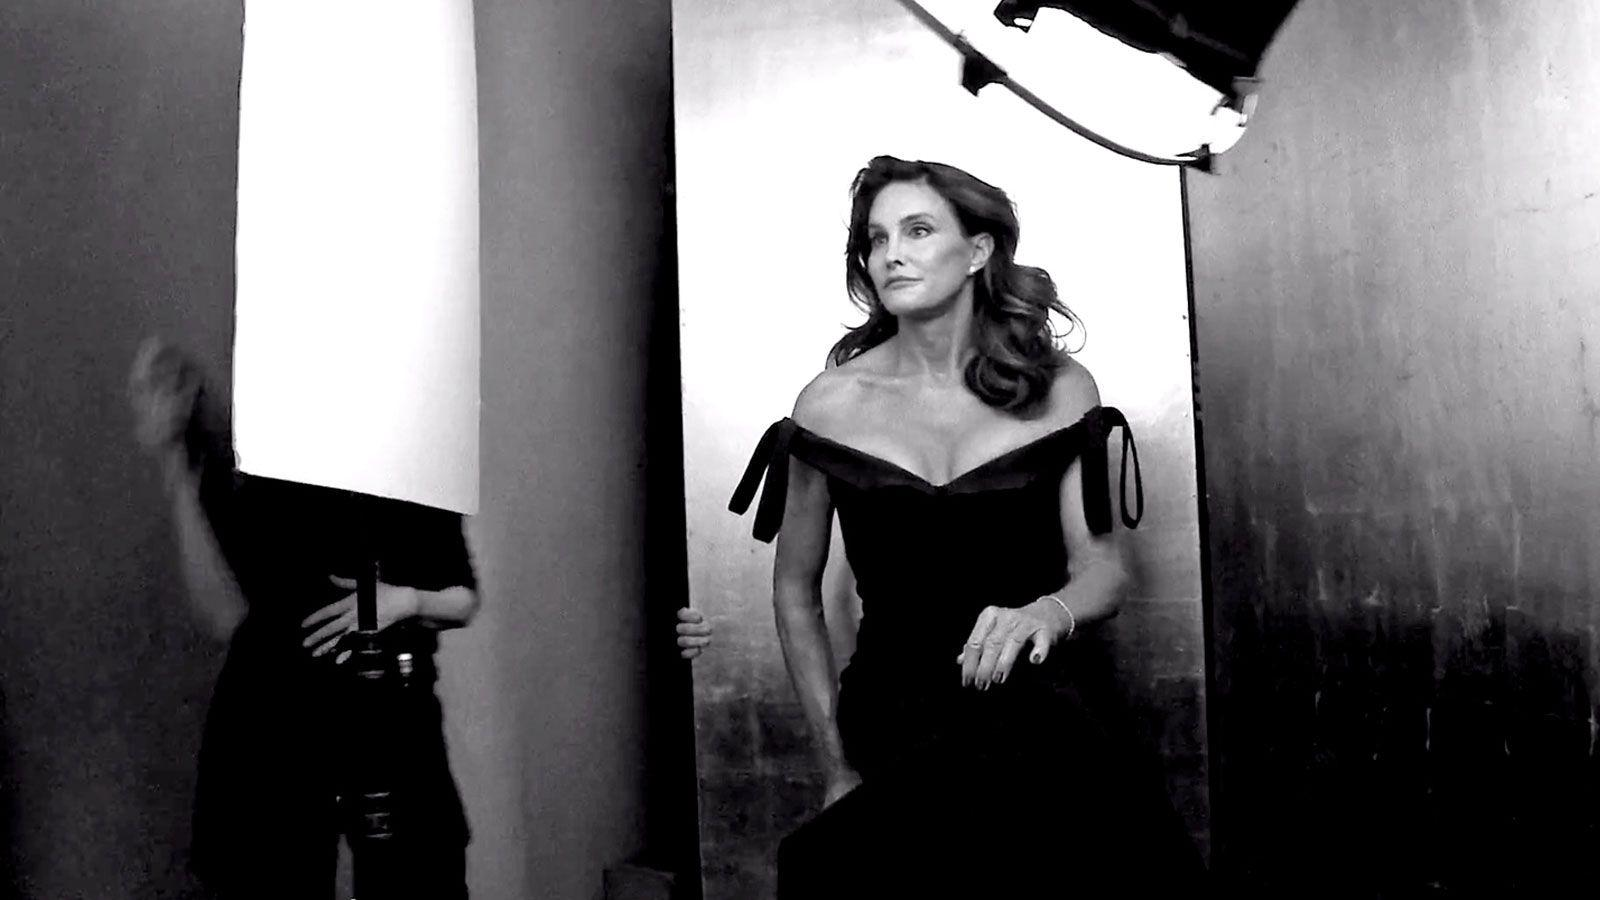 Caitlyn Jenner during the Vanity Fair Photoshoot - 1600x900 ...